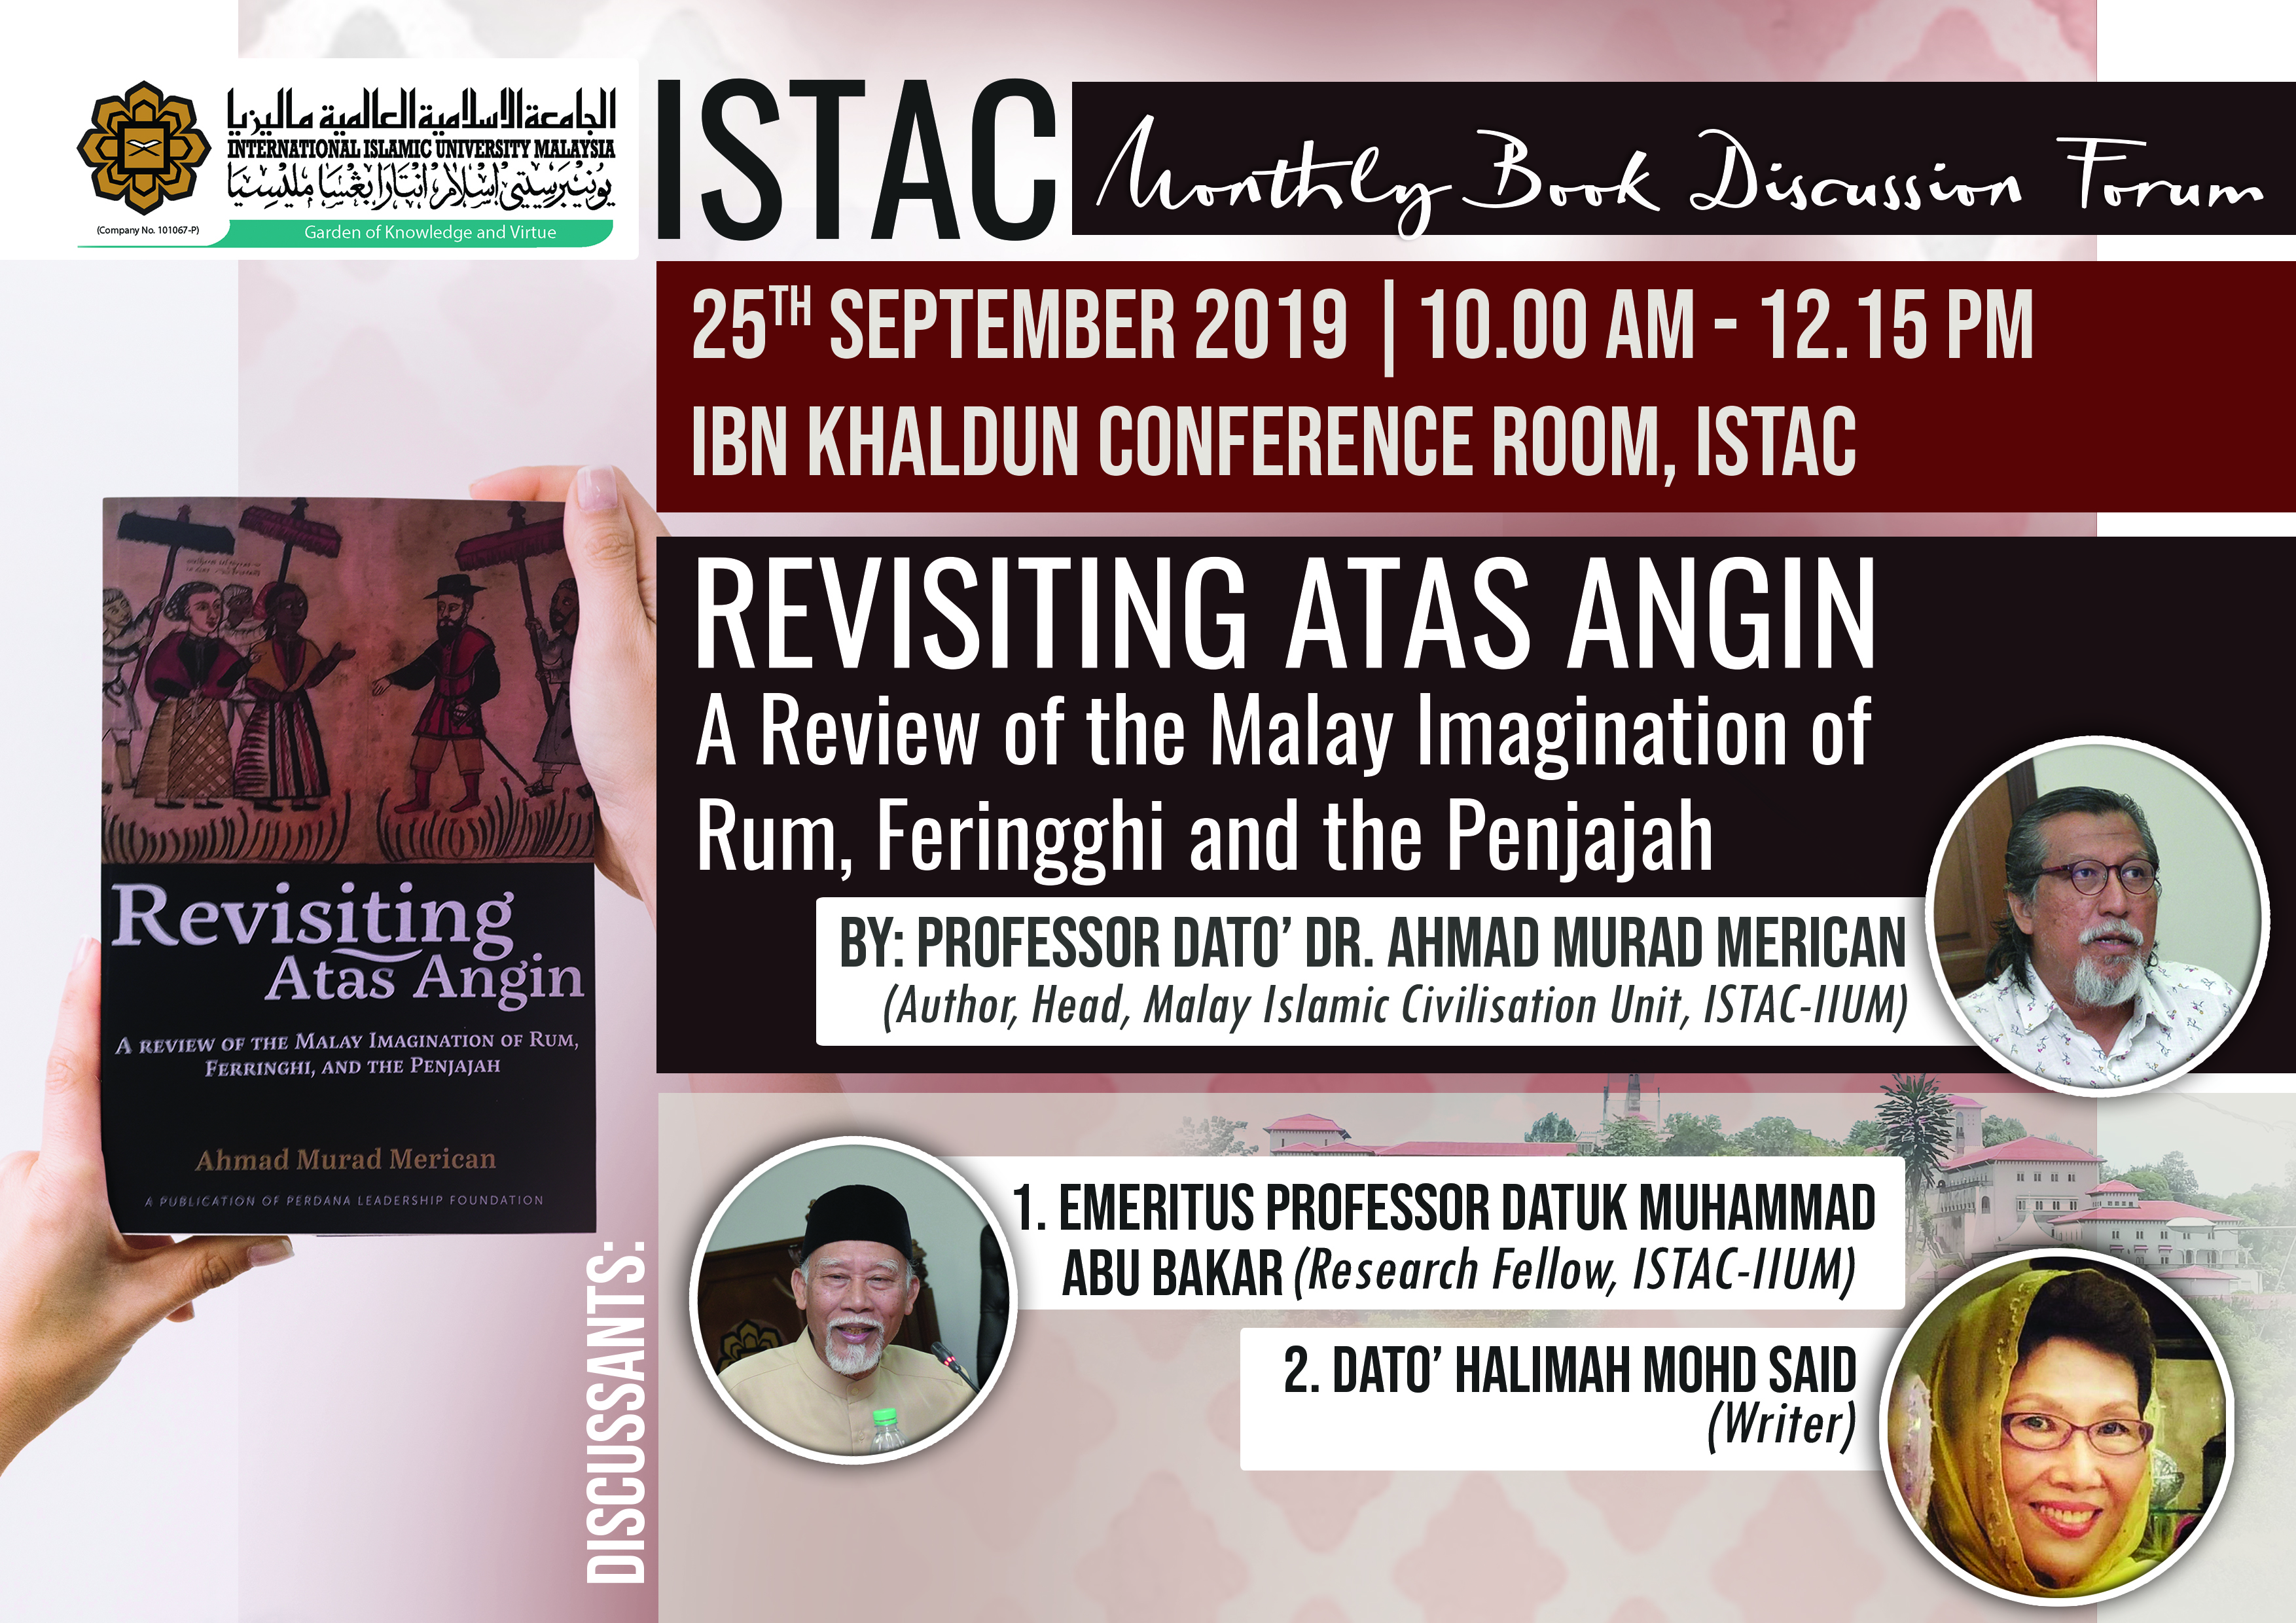 ISTAC MONTHLY BOOK DISCUSSION FORUM